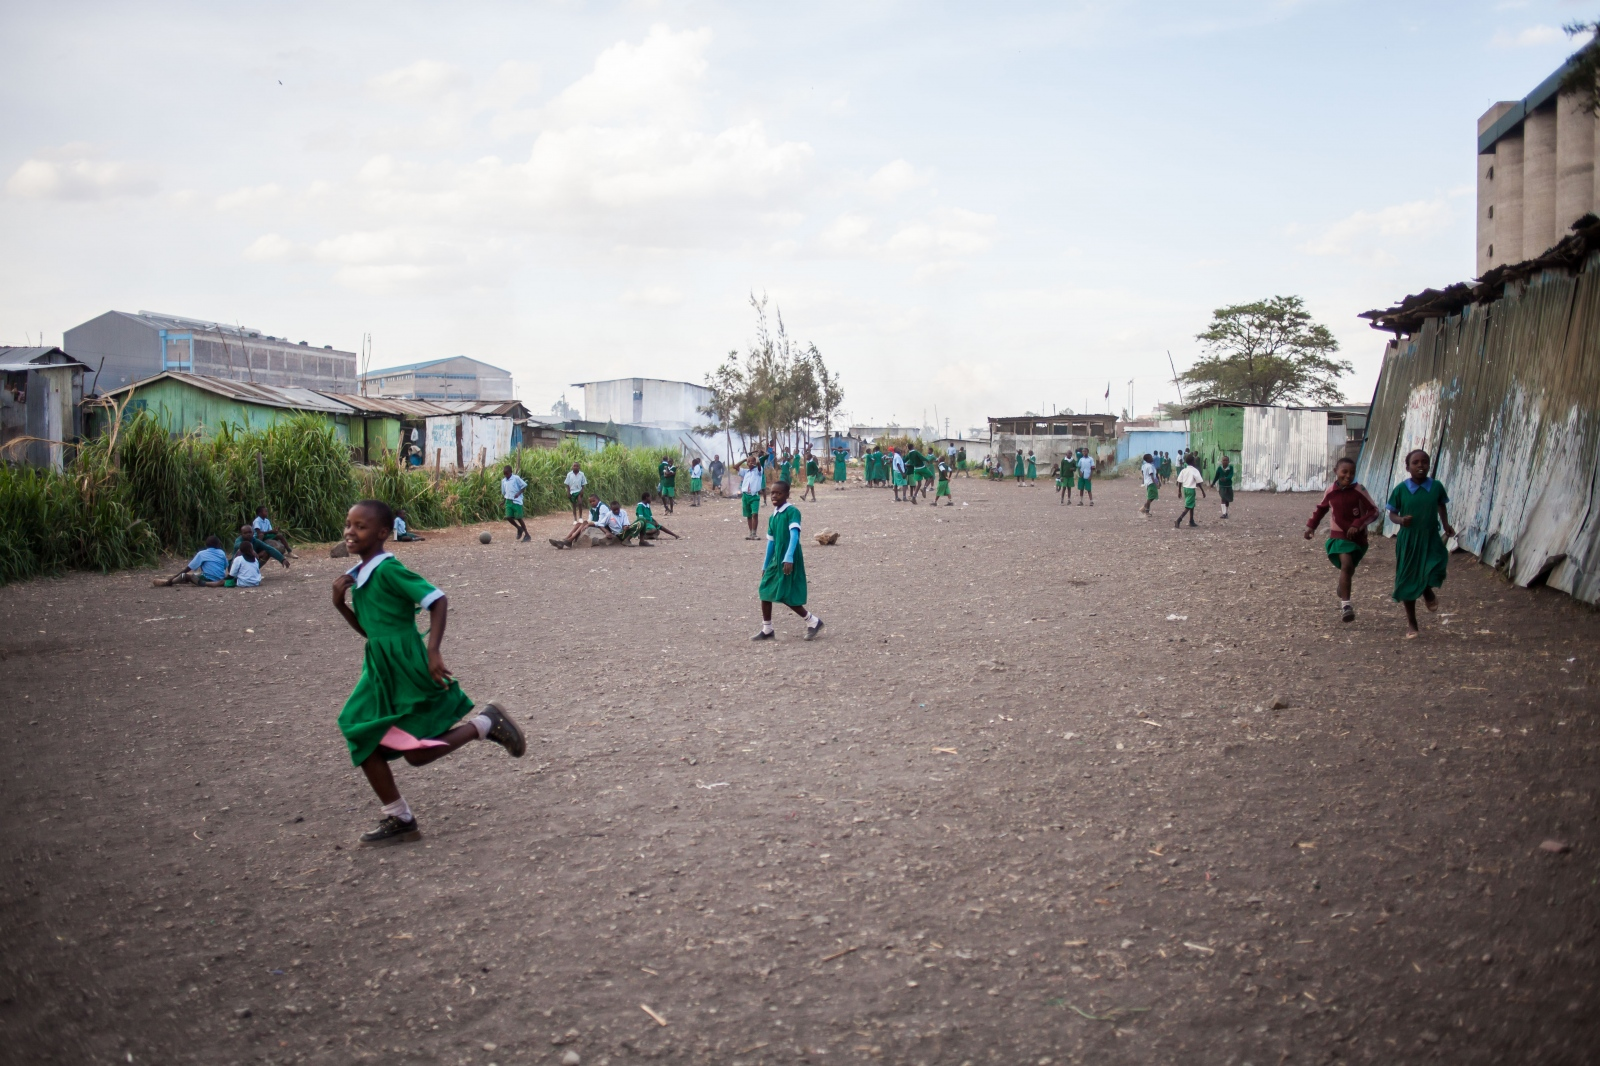 Sinai Slum, Nairobi, KENYA, October 29, 2013: School children play during a break at Jobenpha Community school. Some ex pupils made it to university, showing the kids that there is a way for them to make it out of the slums through education.